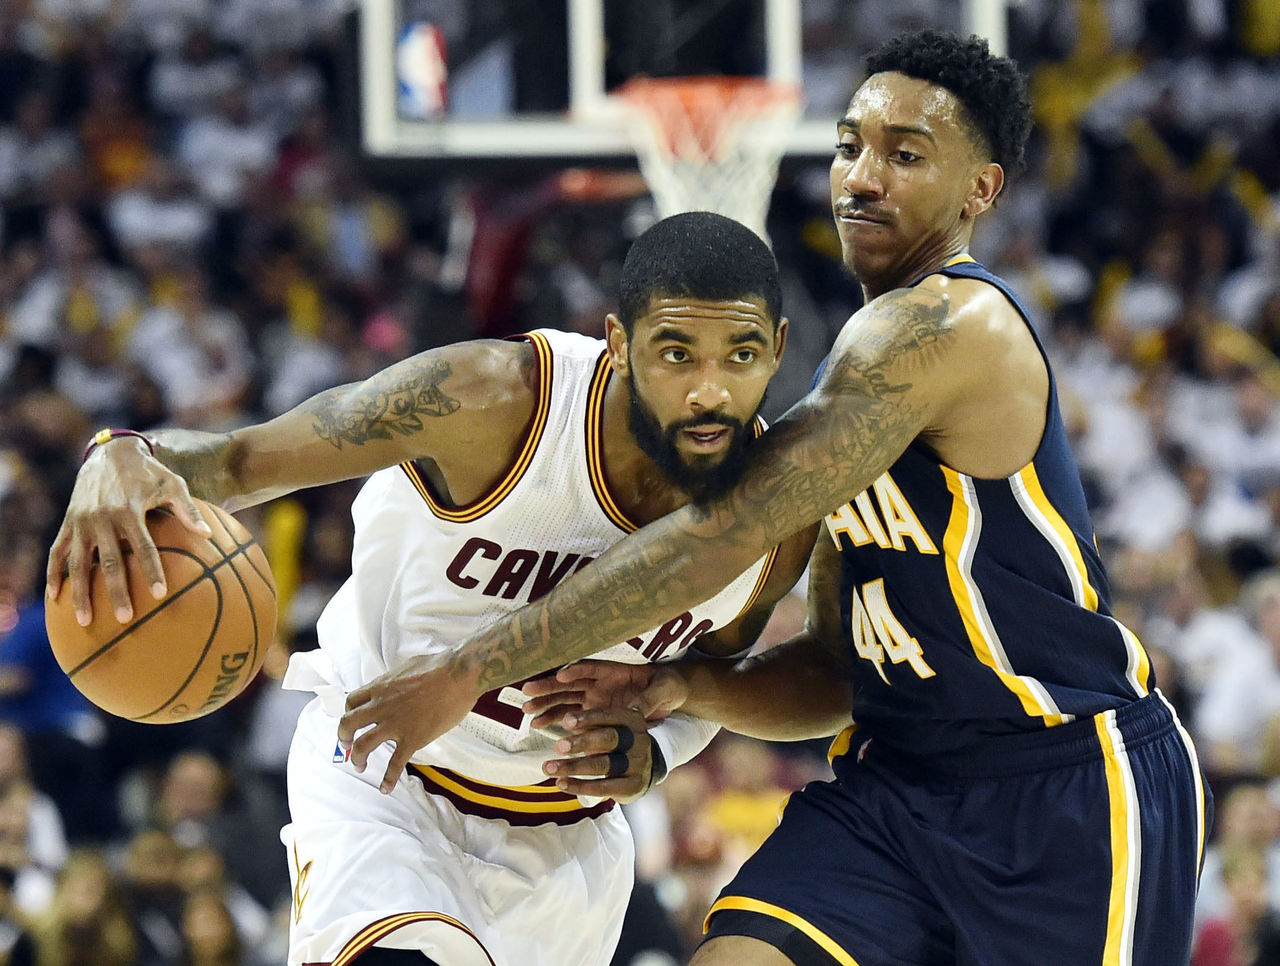 Cropped 2017 04 18t015713z 2067426830 nocid rtrmadp 3 nba playoffs indiana pacers at cleveland cavaliers